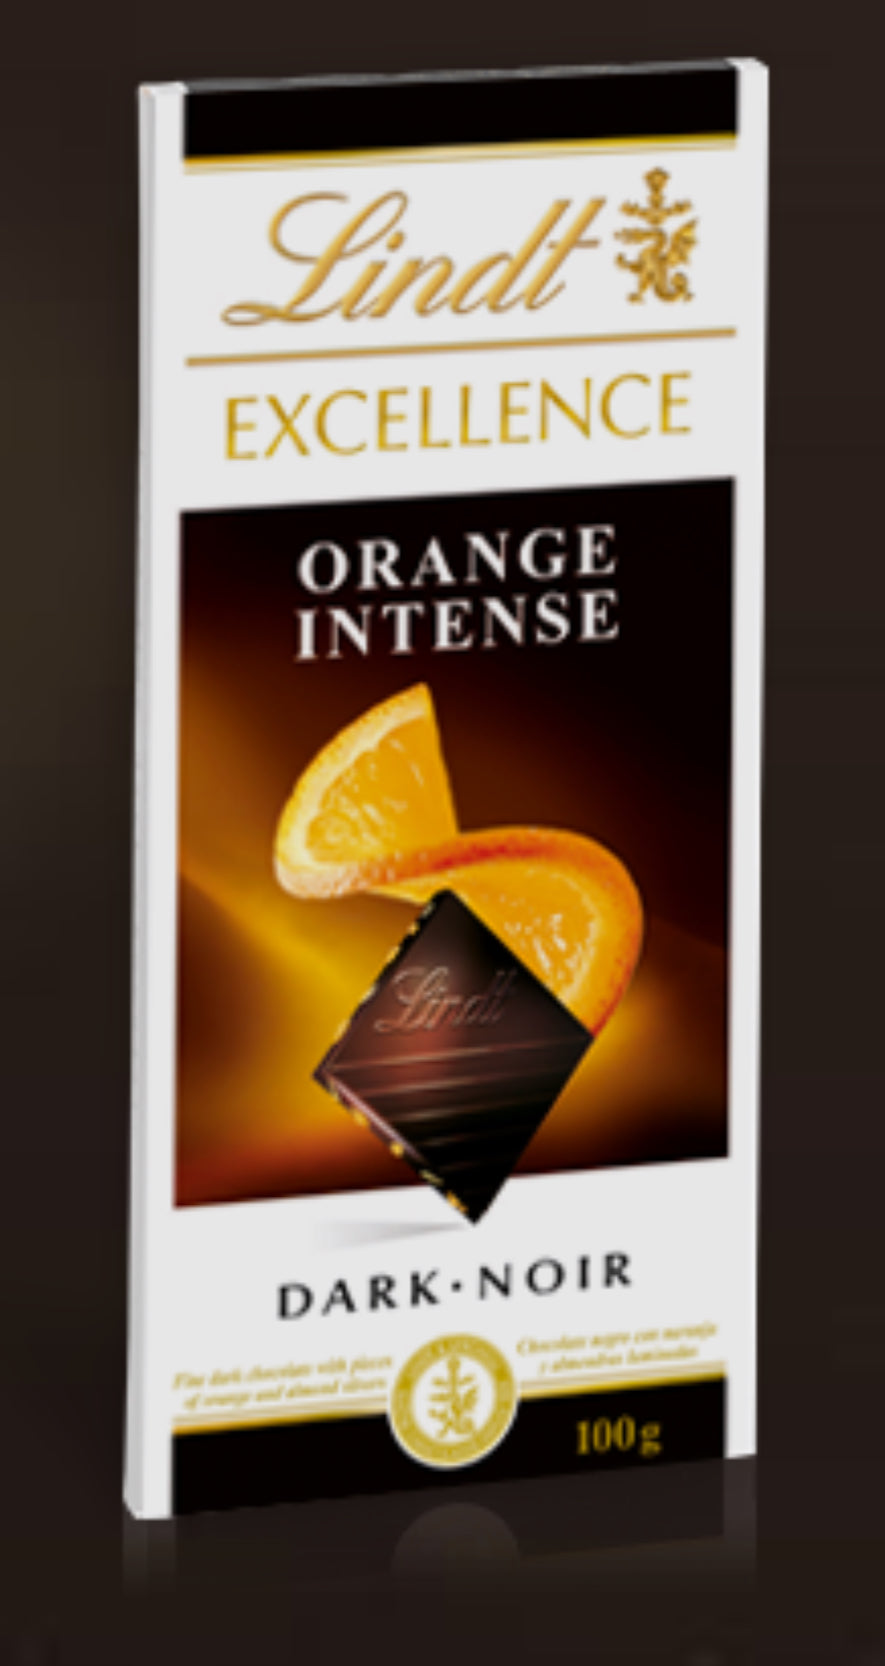 Lindt Excellence Dark Orange Intense